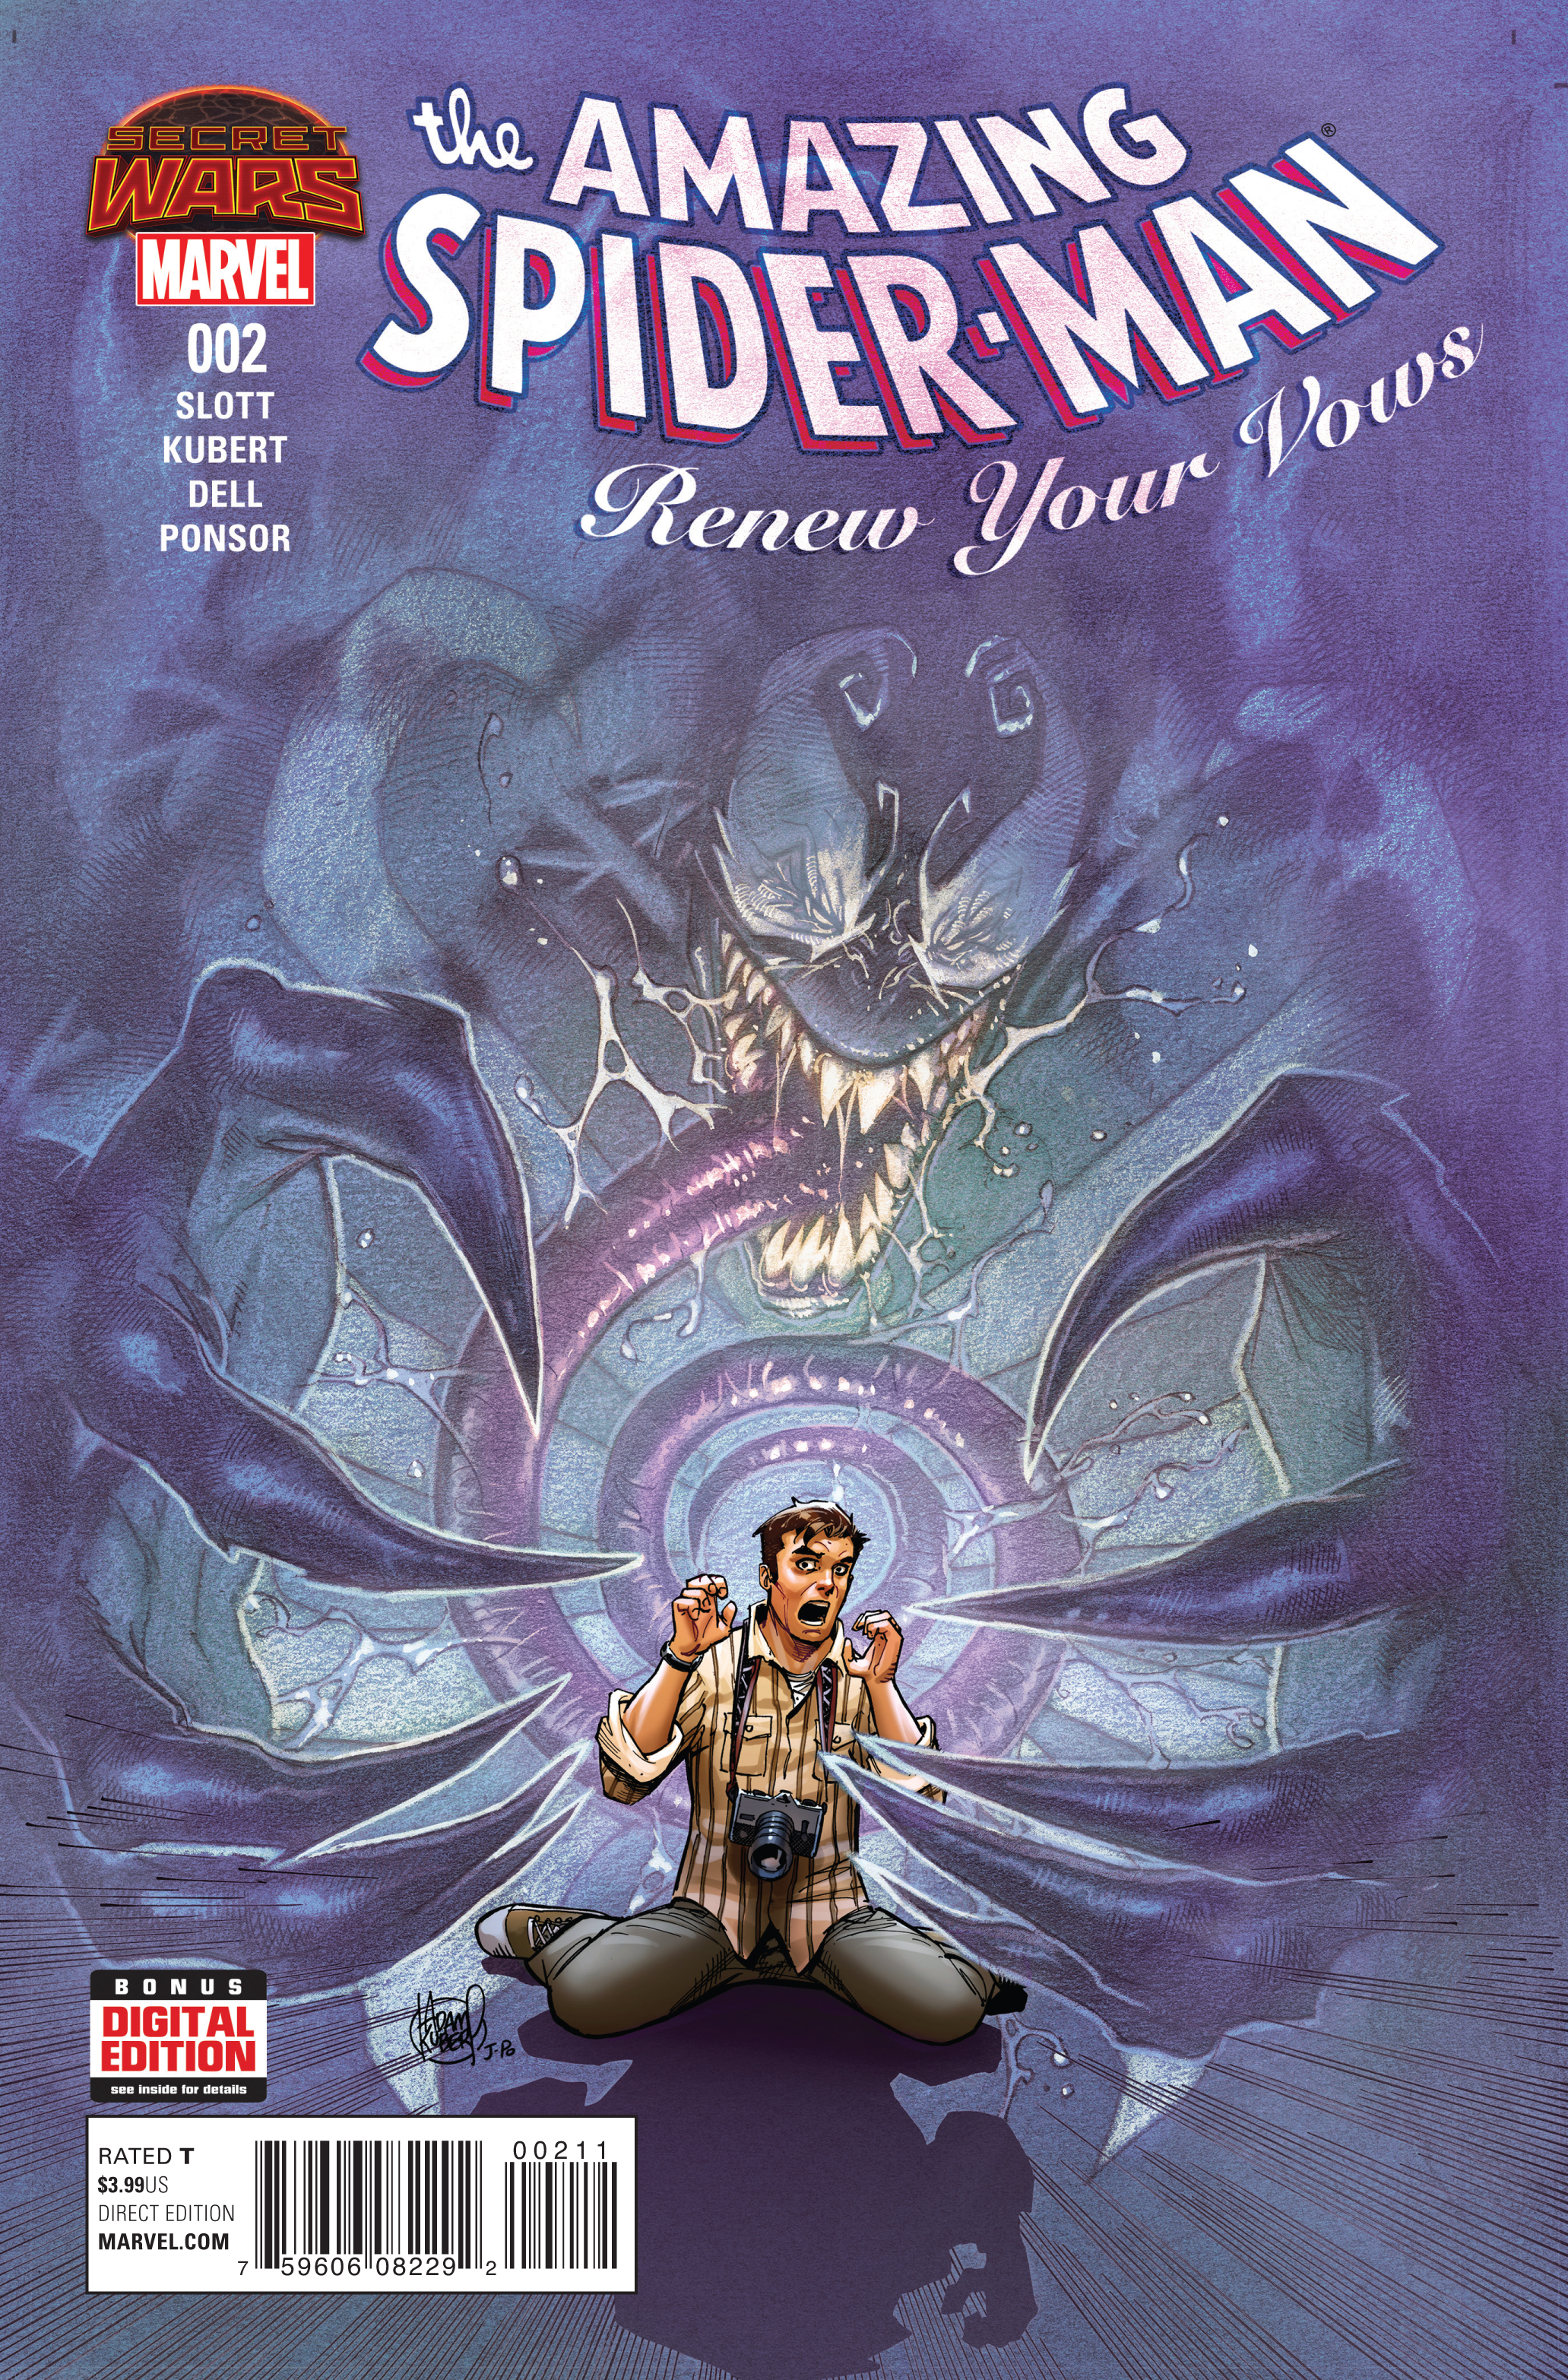 AMAZING SPIDER-MAN RENEW YOUR VOWS #2 SWA